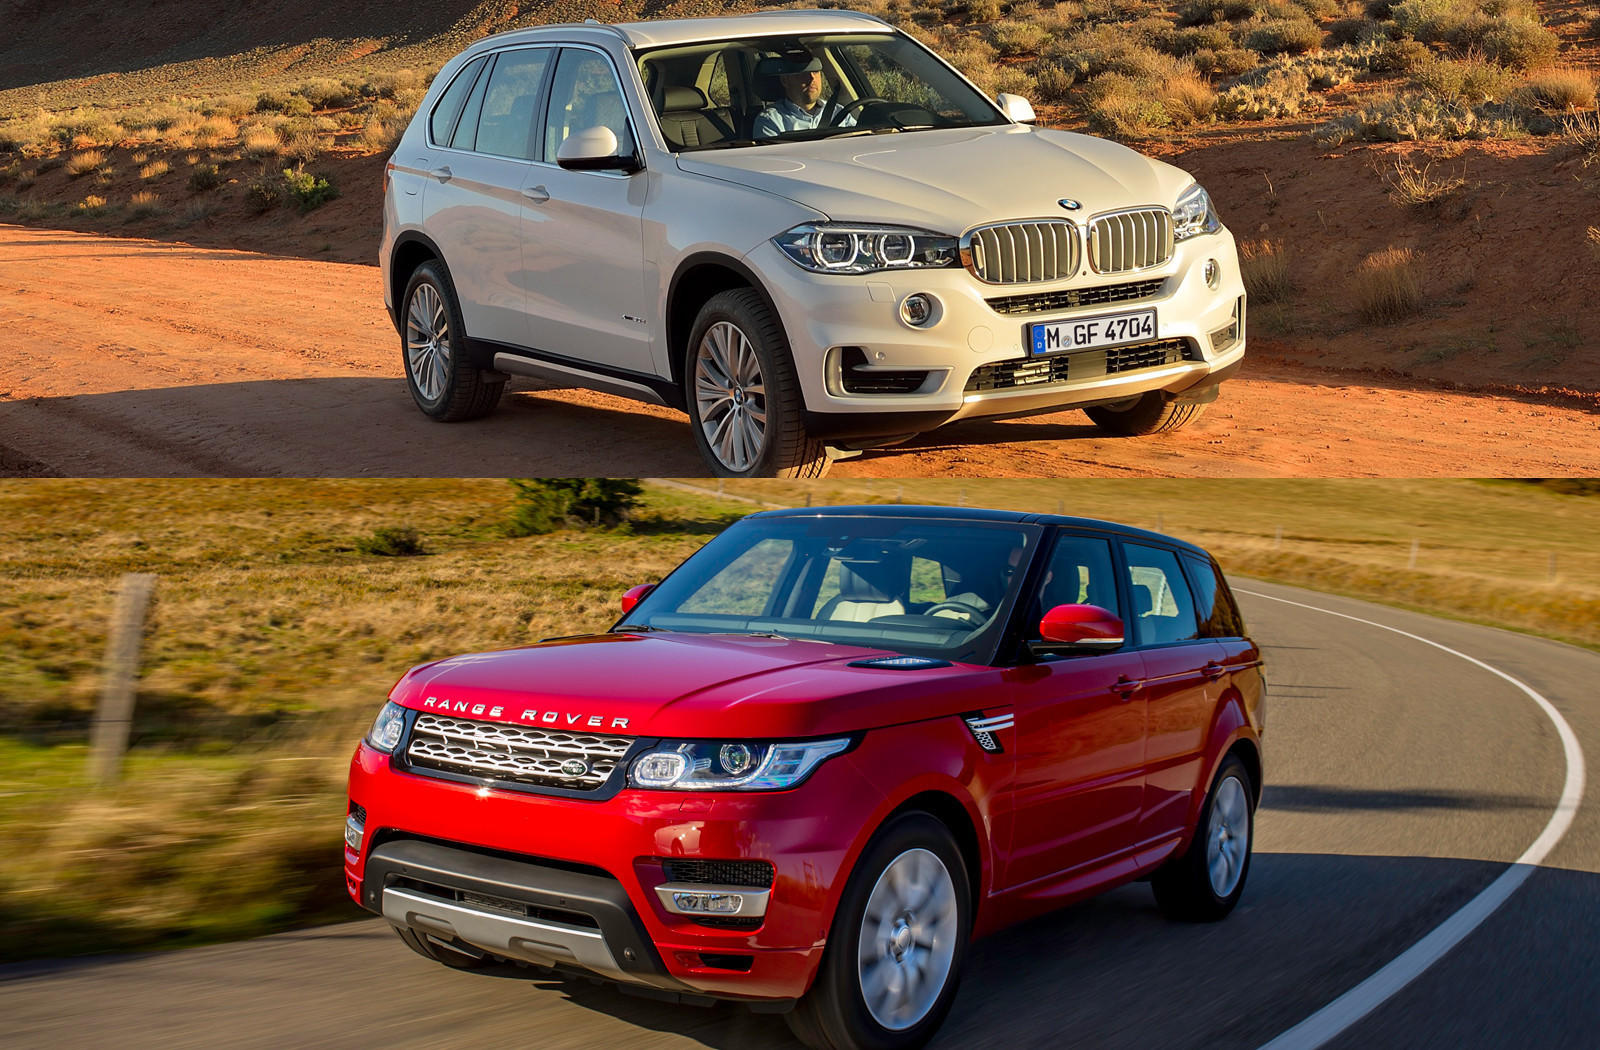 Bmws 2014 x5 xdrive35i top and land rovers range rover sport hse are the 2014 bmw x5 vs